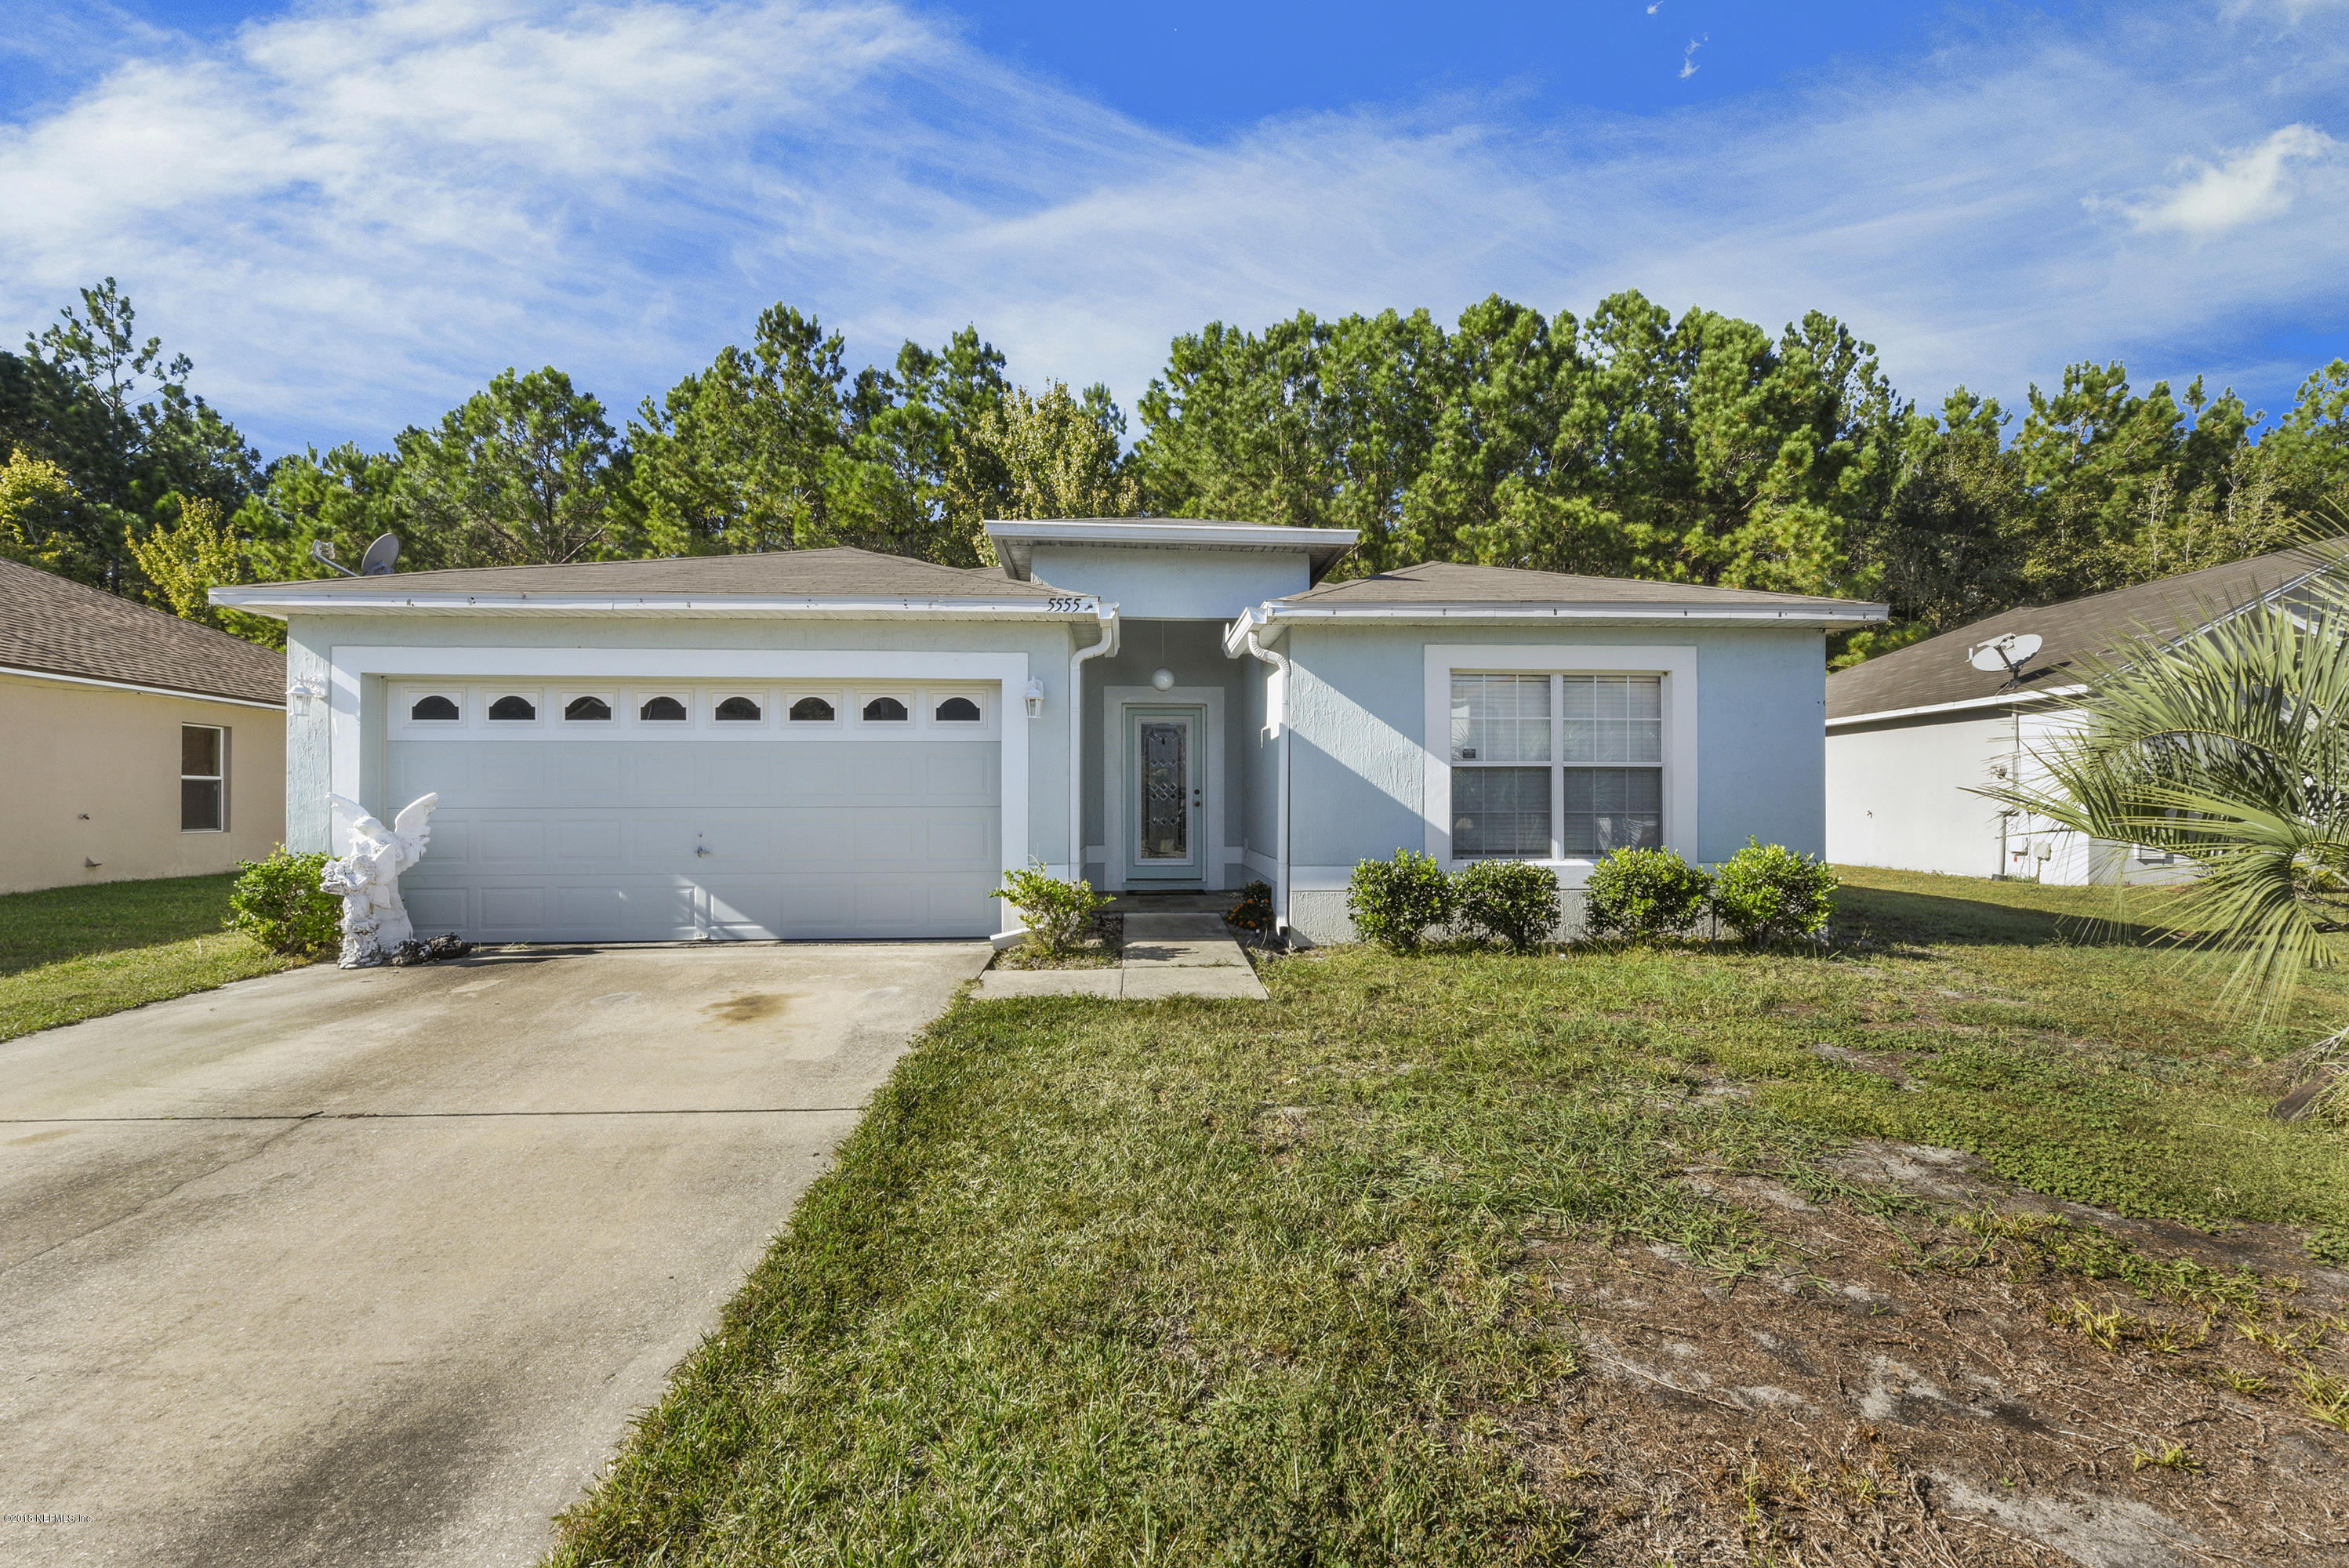 5555 SHADY PINE, JACKSONVILLE, FLORIDA 32244, 3 Bedrooms Bedrooms, ,2 BathroomsBathrooms,Residential - single family,For sale,SHADY PINE,965138